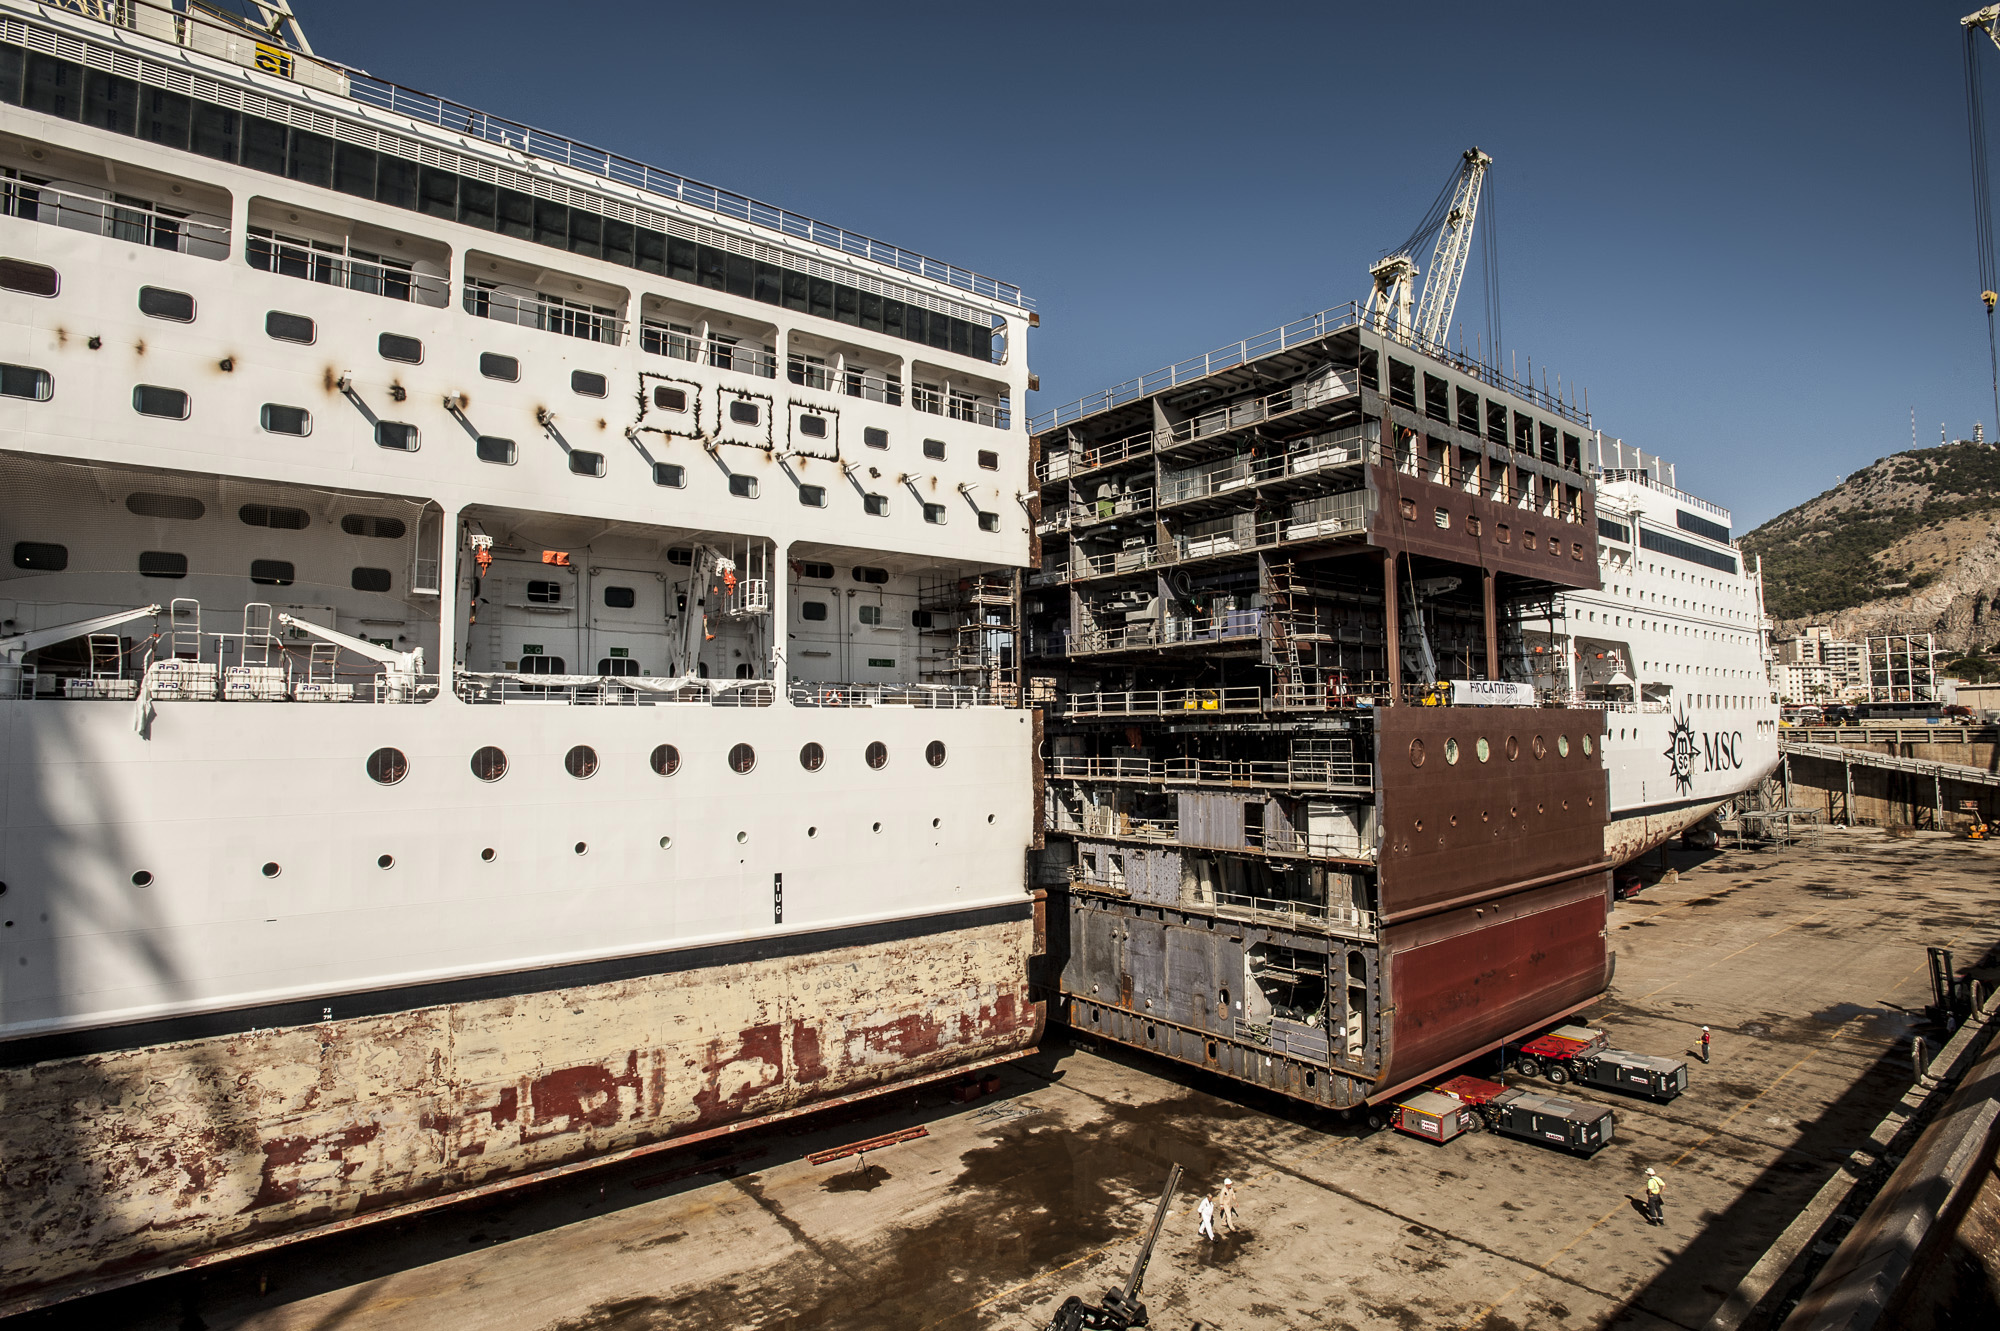 How do you stretch a cruise ship? Simple – cut it in two and stick a new bit in the middle